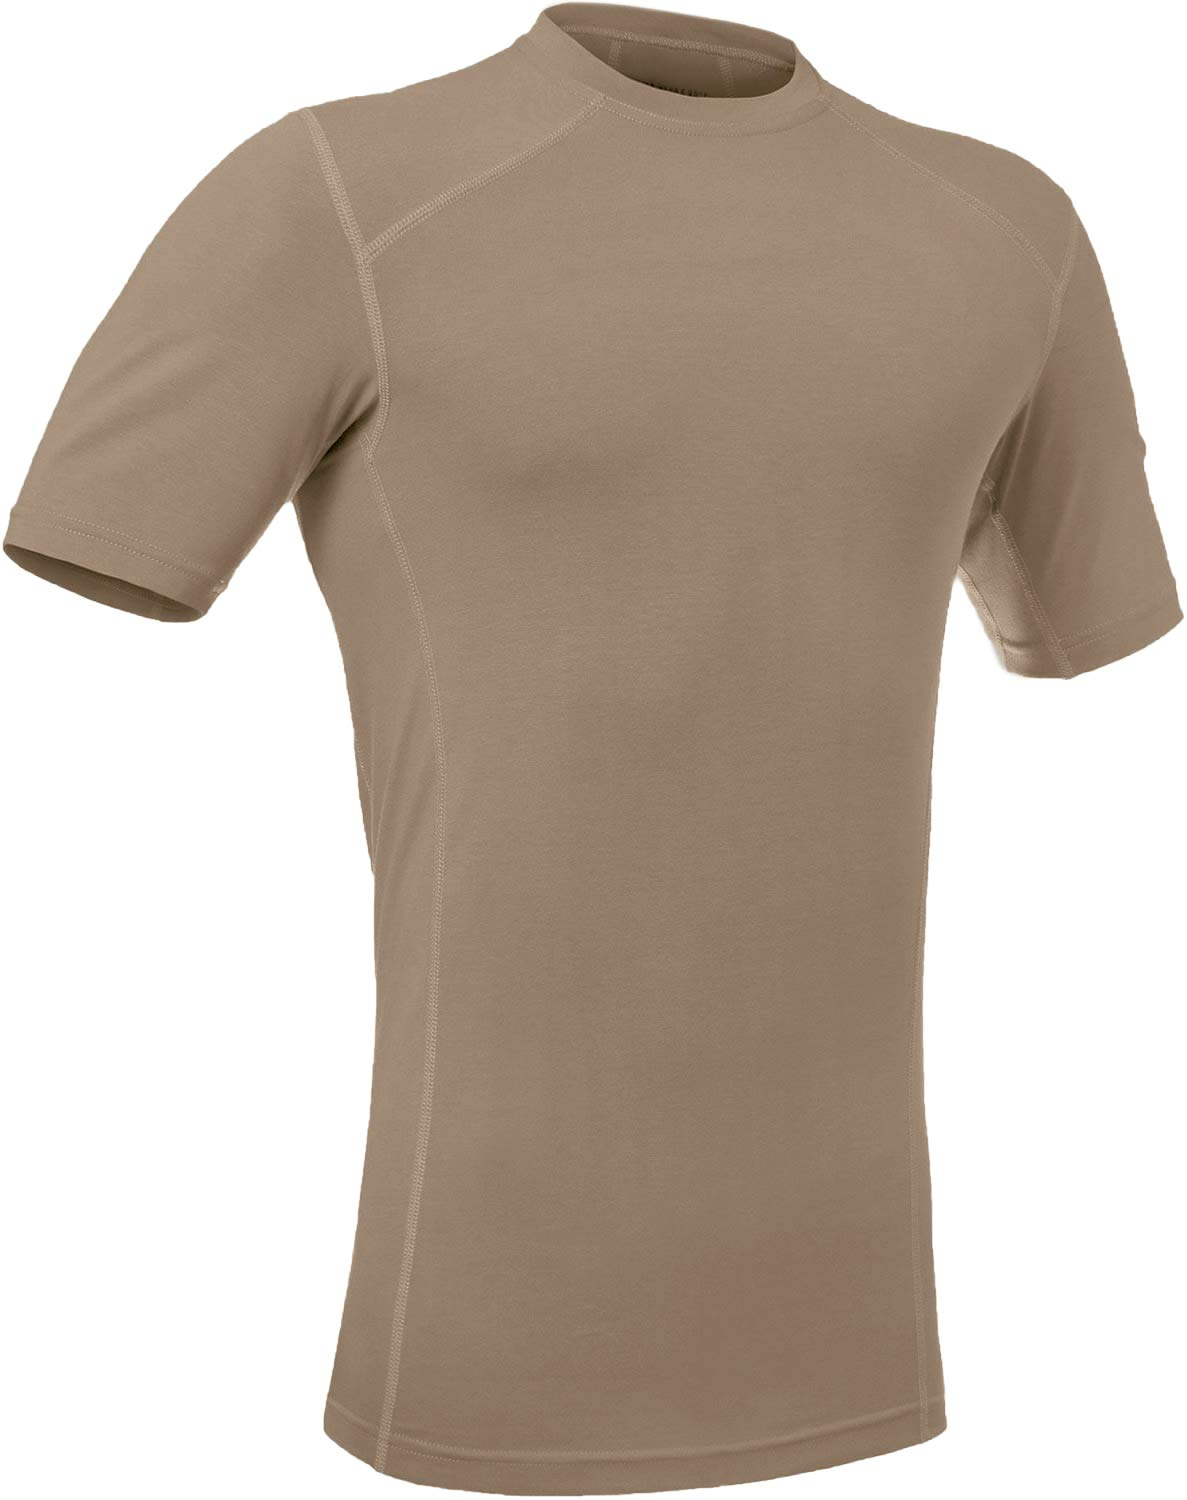 281Z Military Stretch Cotton Underwear T-Shirt - Tactical Hiking Outdoor - Punisher Combat Line (Tan, Large) by 281Z